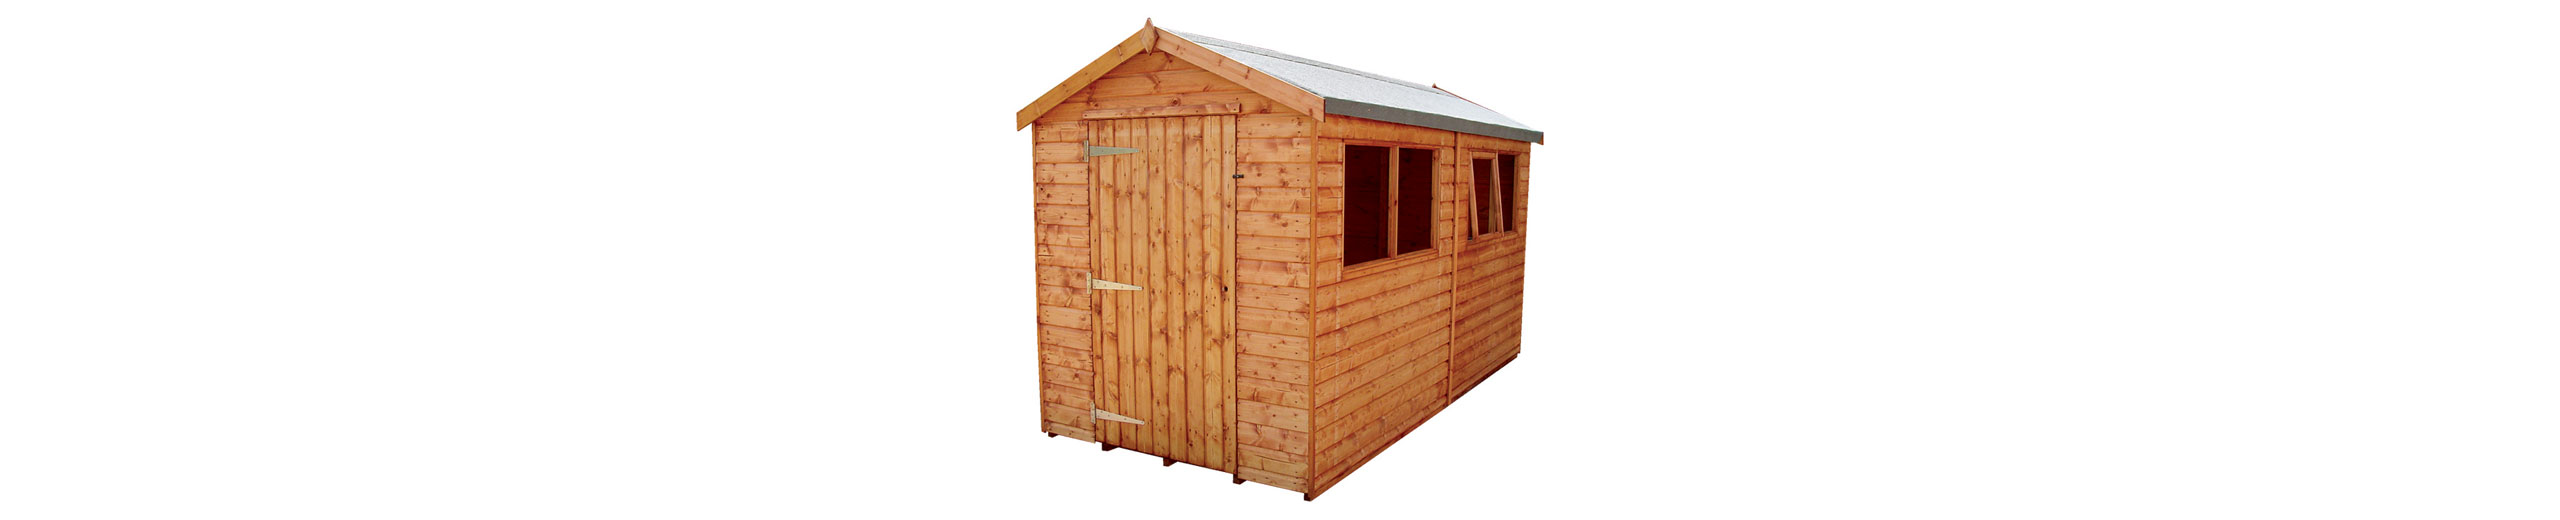 Small wooden garden shed